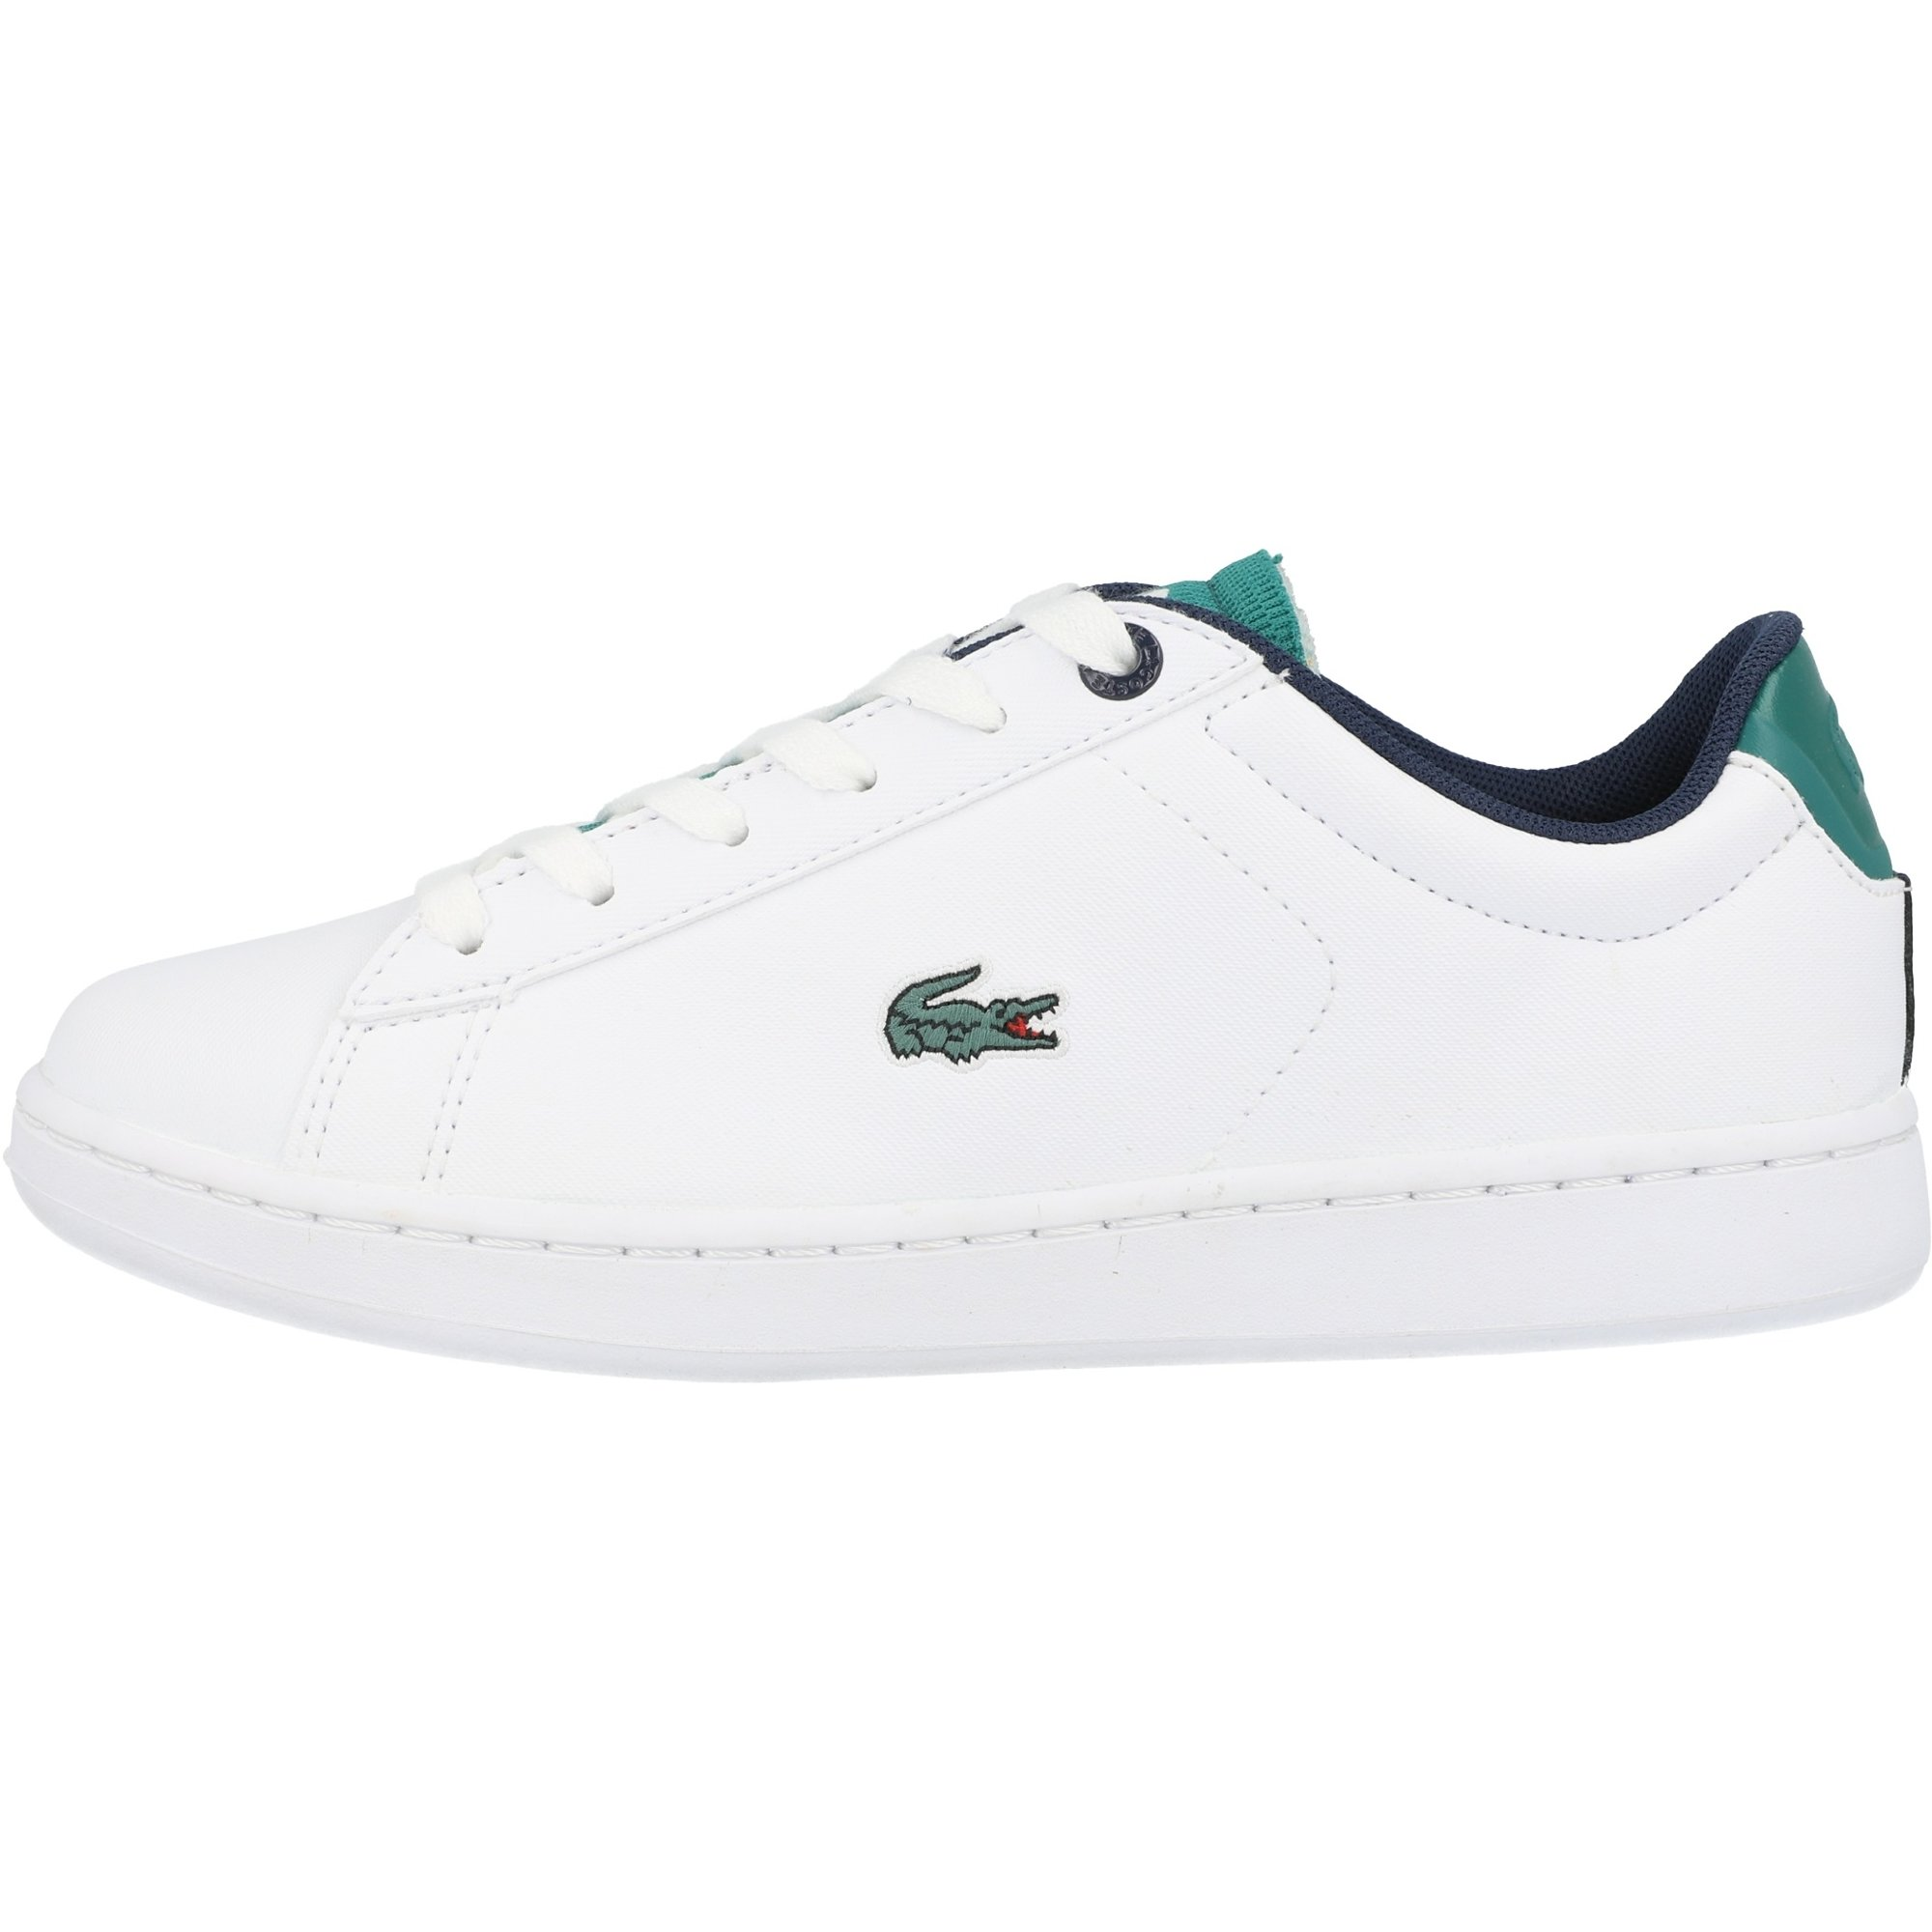 Lacoste Carnaby Evo 120 2 White/Green Synthetic